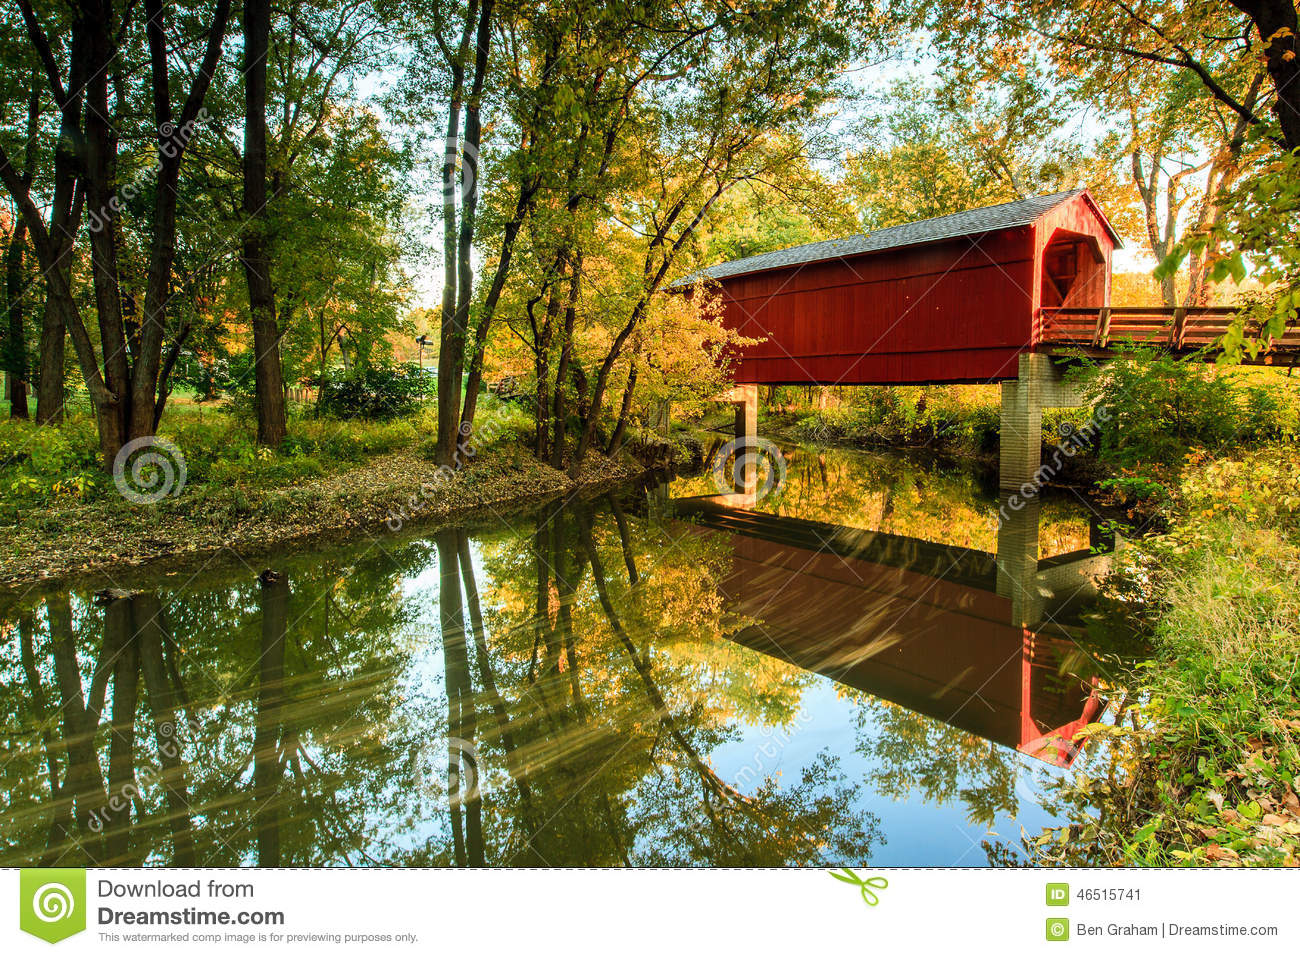 3d Animation Wallpaper Download Sugar Creek Covered Bridge Stock Photo Image 46515741